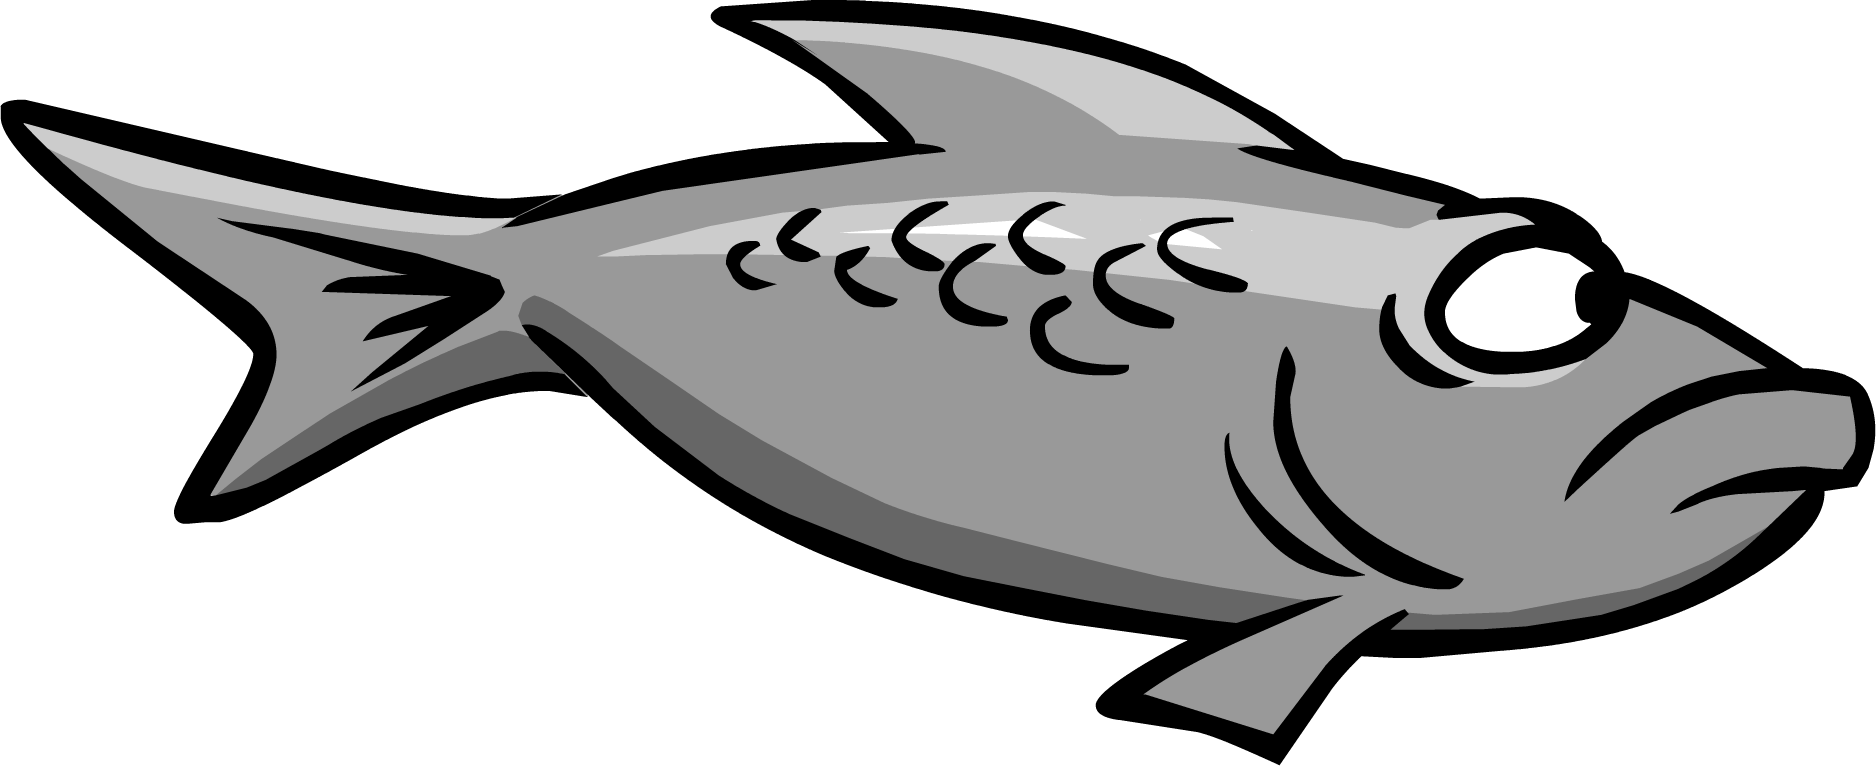 Fish fossils clipart svg stock Gray Fish | Club Penguin Wiki | FANDOM powered by Wikia svg stock